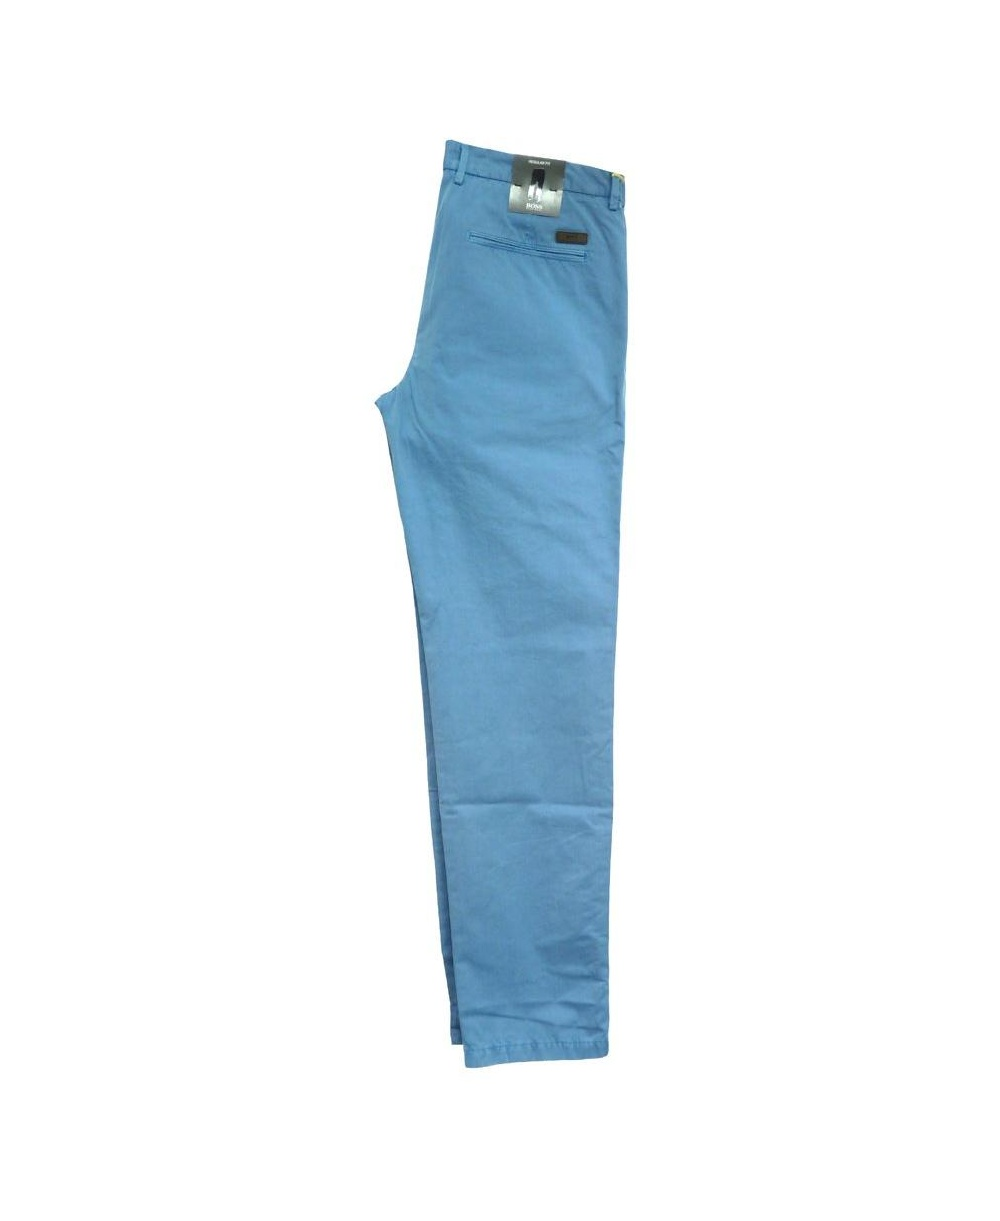 hugo boss blue crigan chino trousers 50260330 hugo boss from jonathan trumbull uk. Black Bedroom Furniture Sets. Home Design Ideas